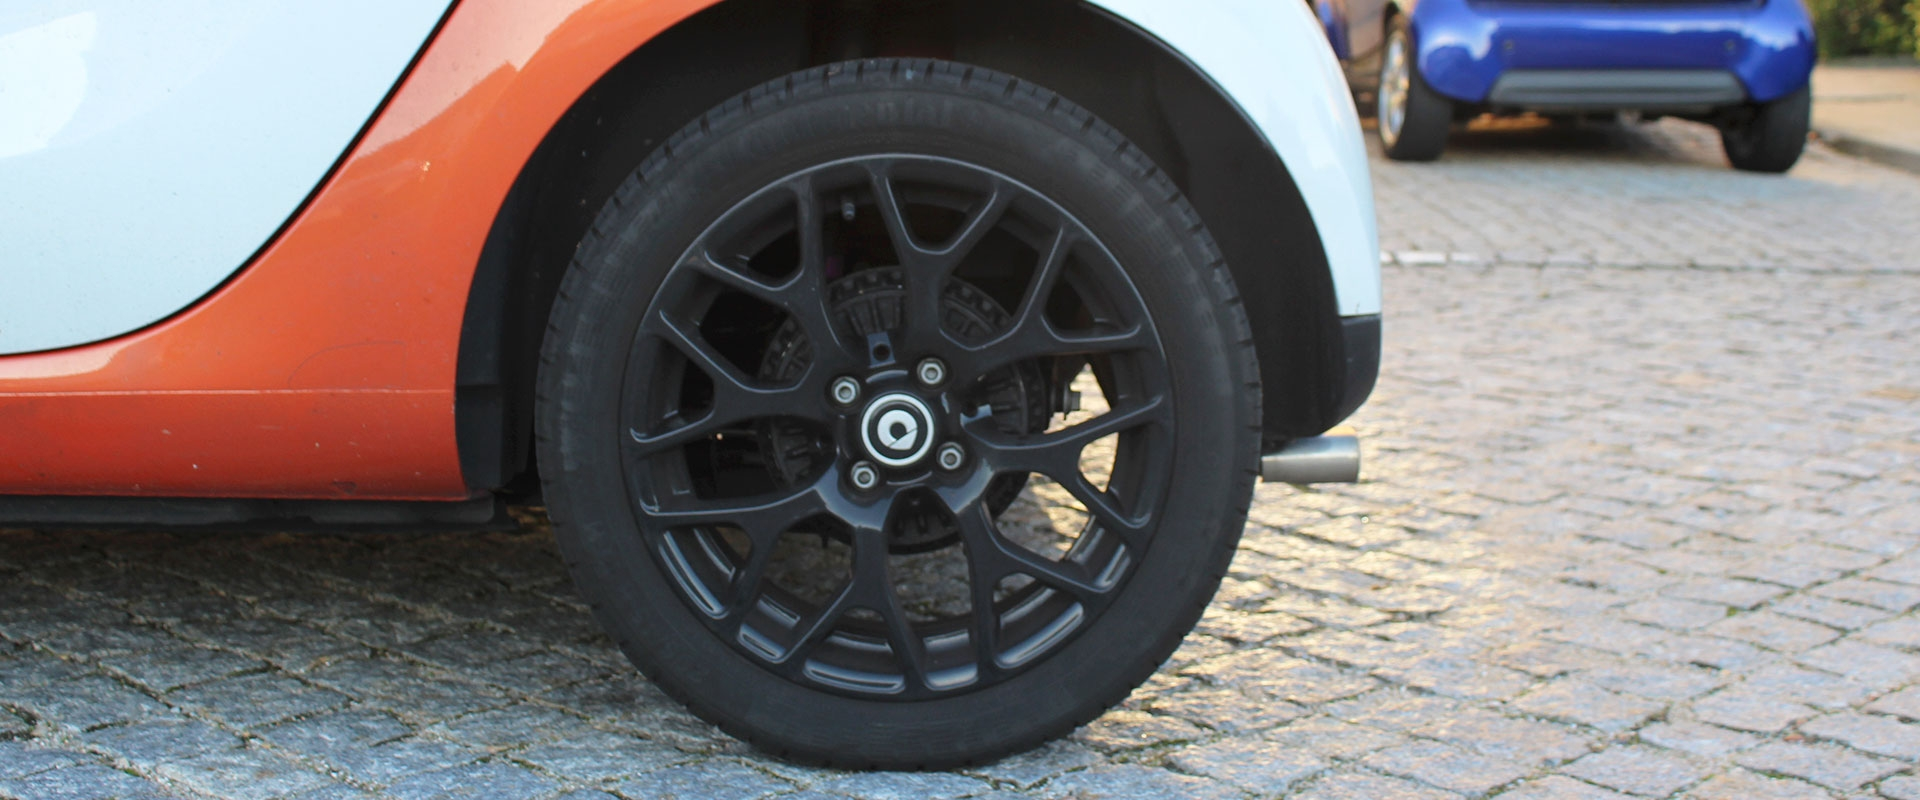 Smart ForTwo 1.0 Mhd Edition#1 71 CV